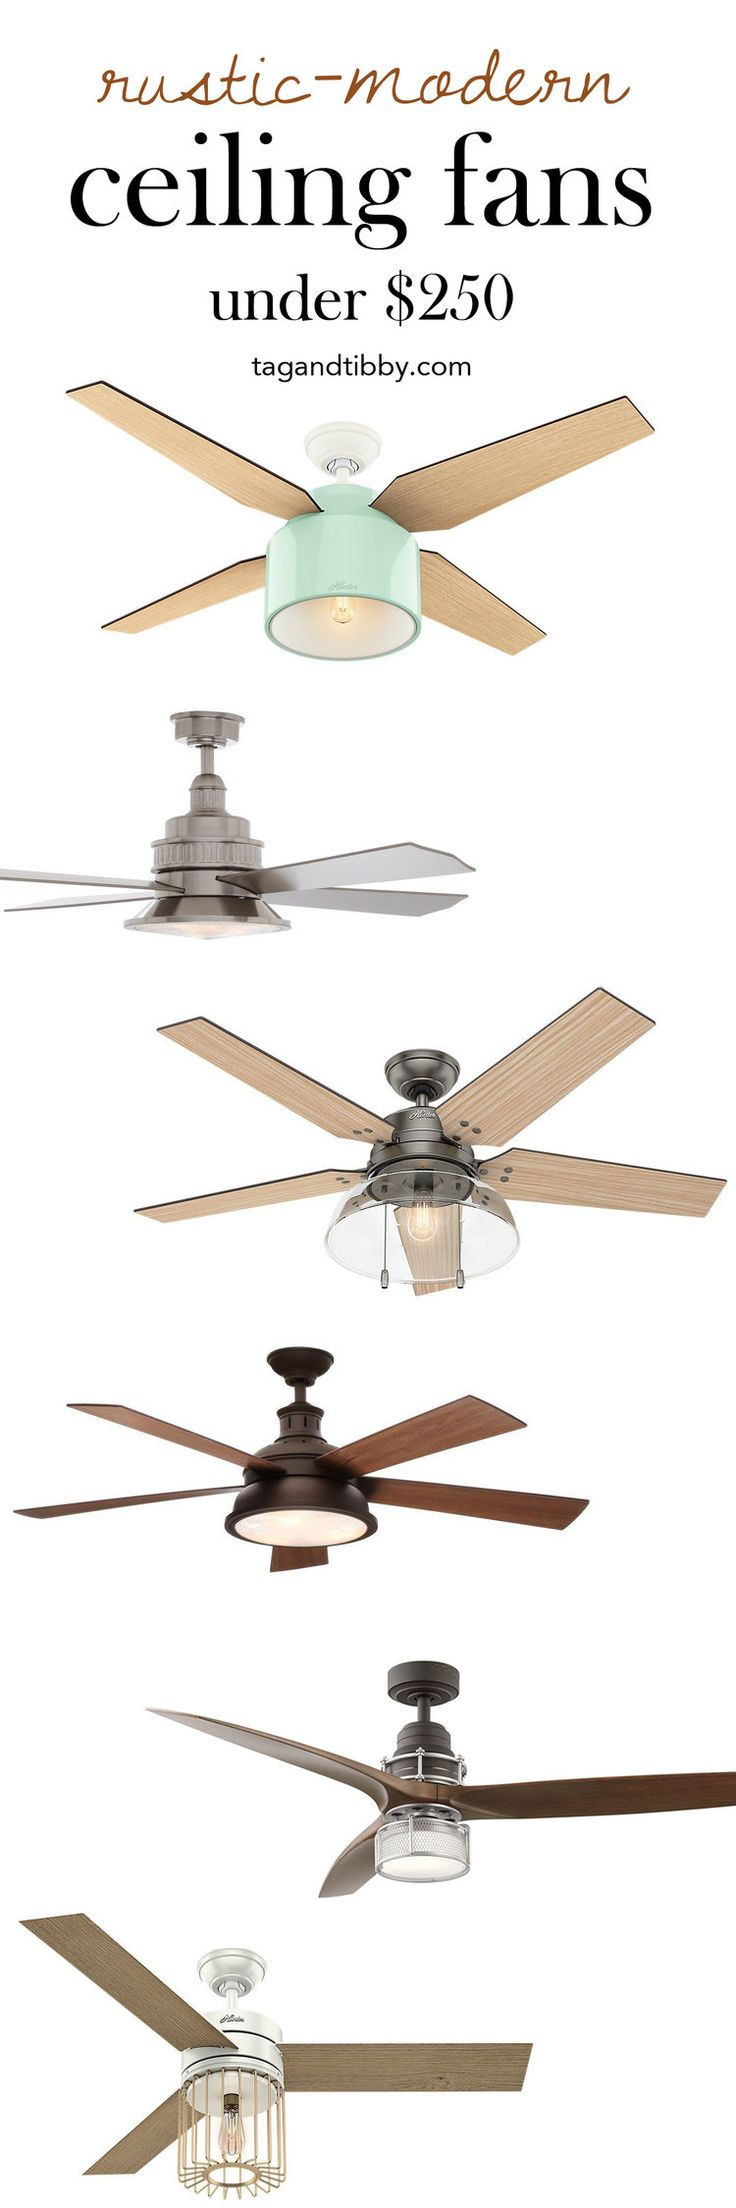 the best rustic-modern ceiling fans for under $250 | tag&tibby